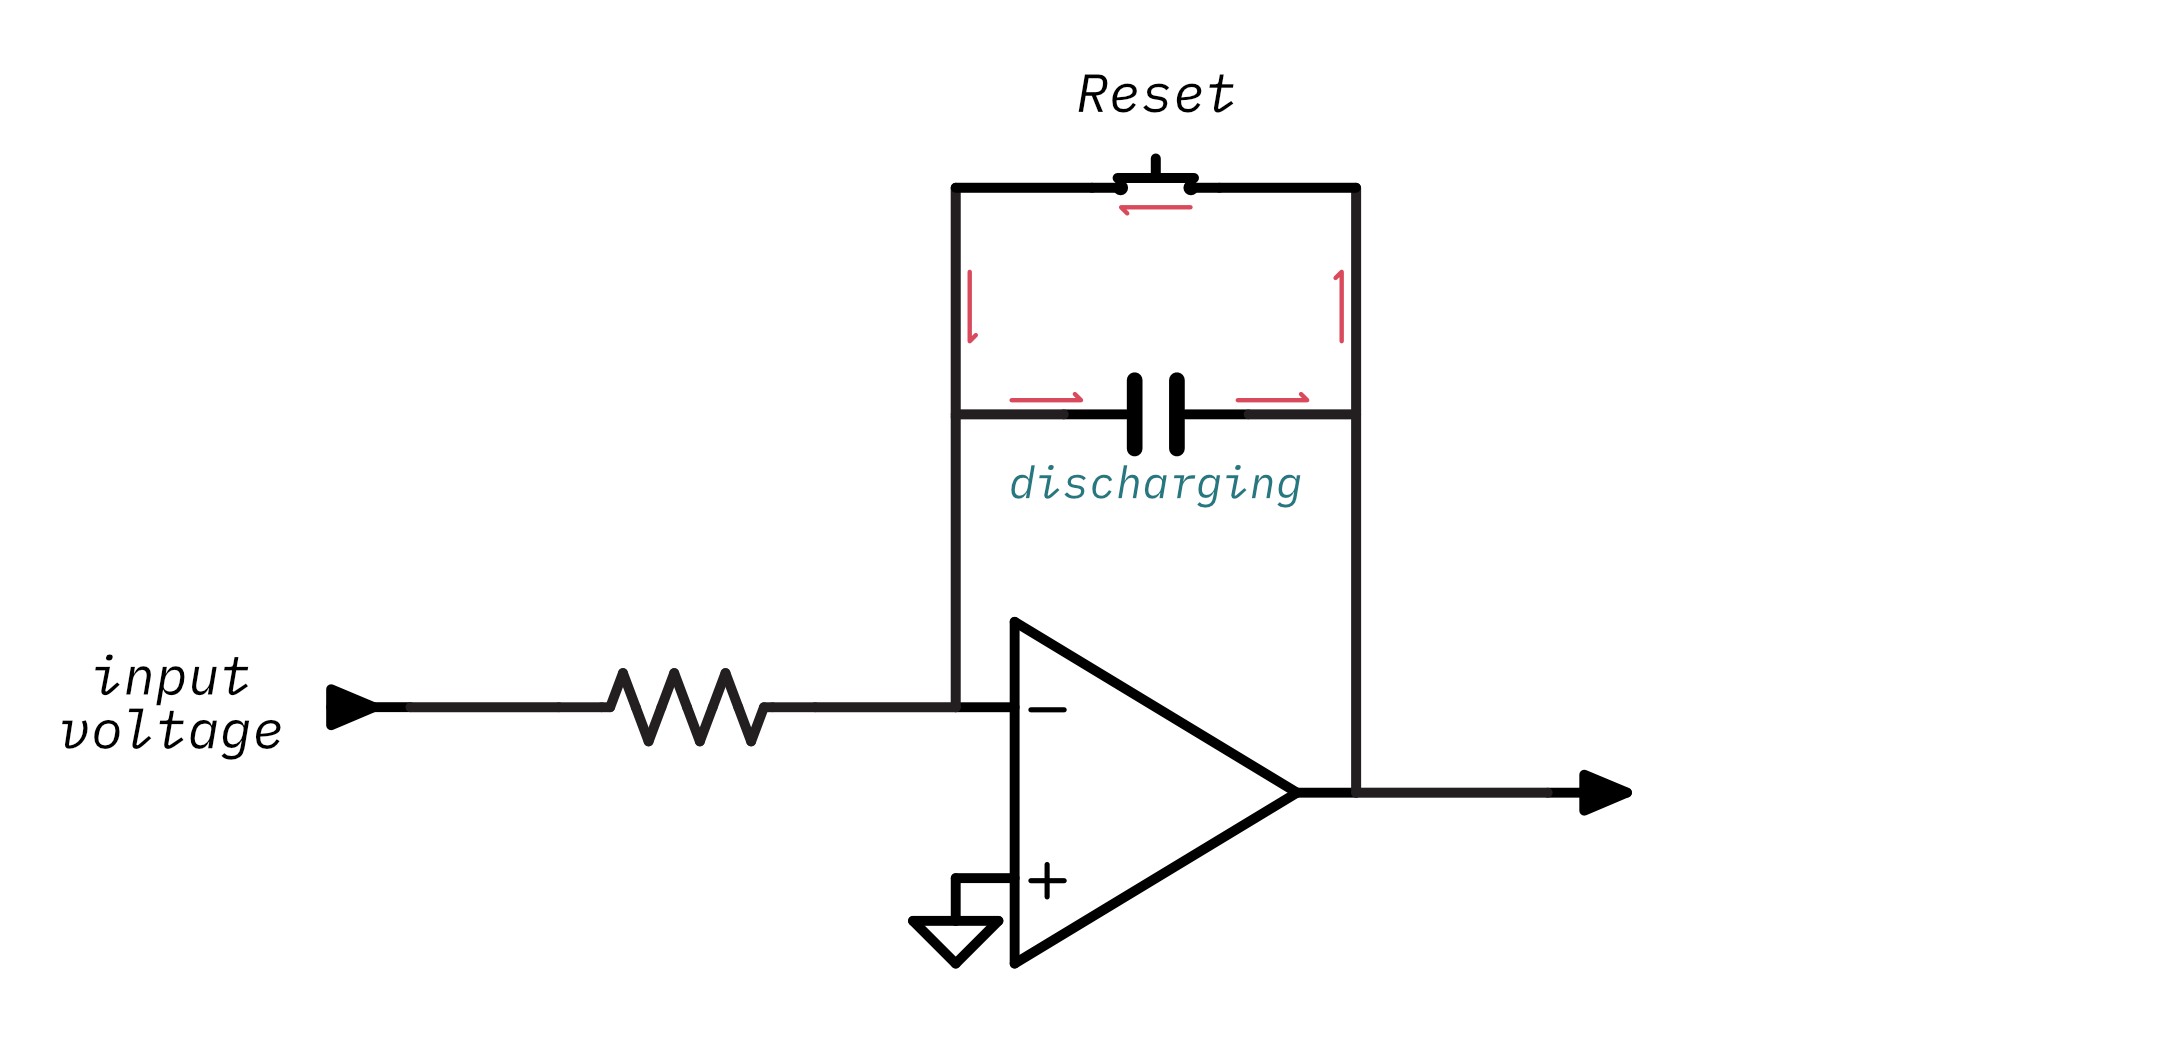 An op-amp integrator with a switch to discharge the capacitor